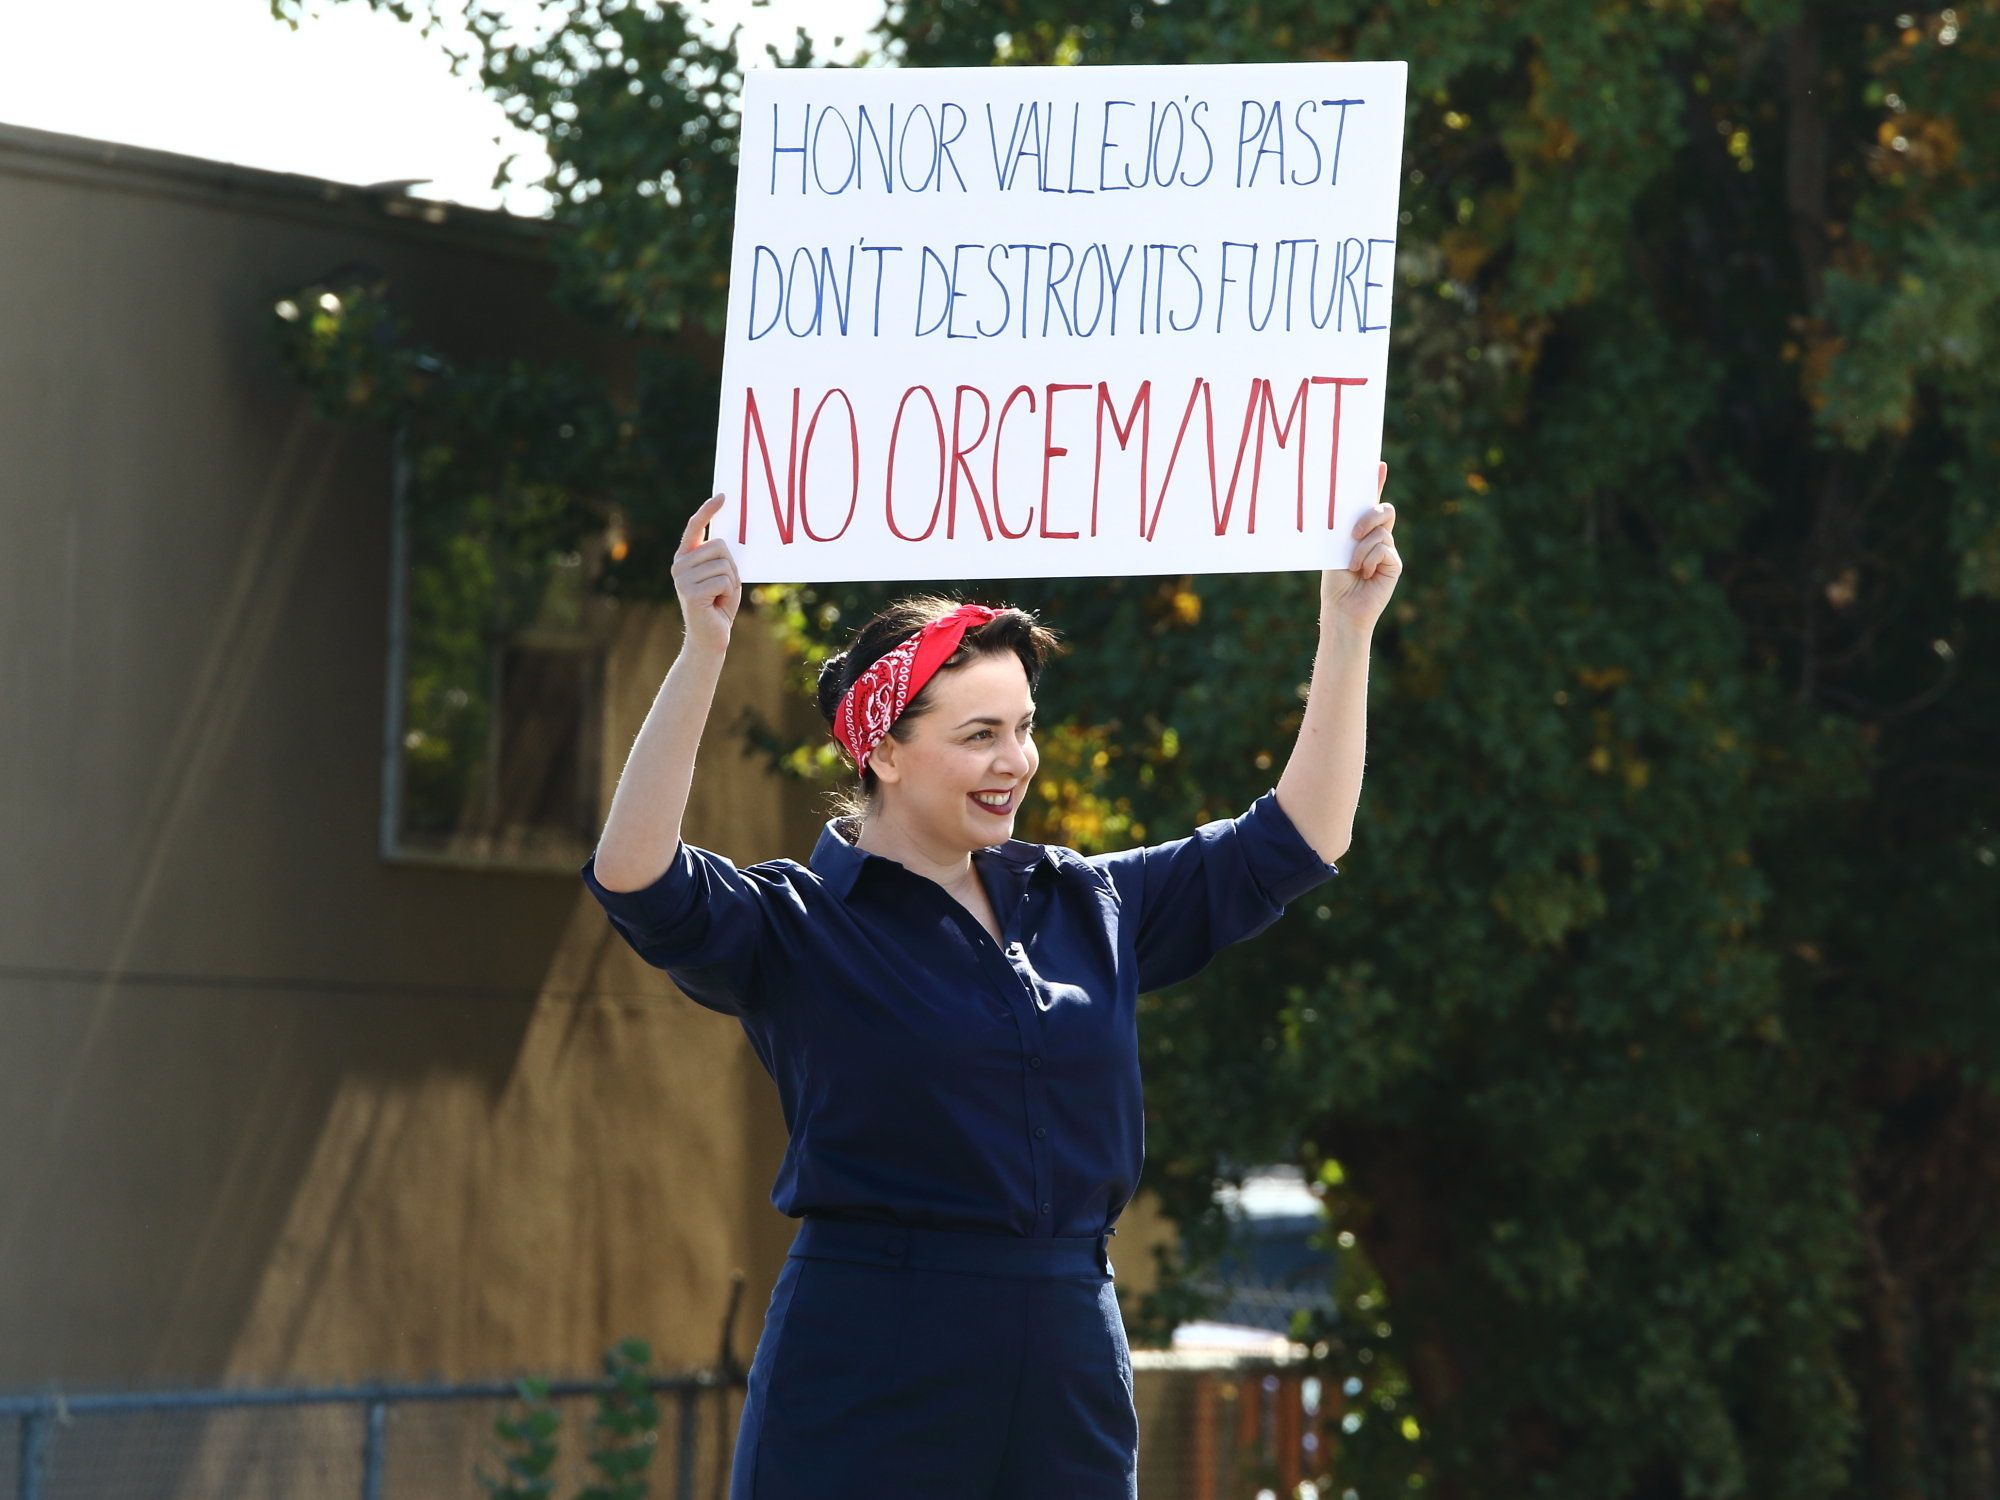 A protester holds up a banner at a rally in Vallejo, California, in October toopposethe proposedOrcem cemen